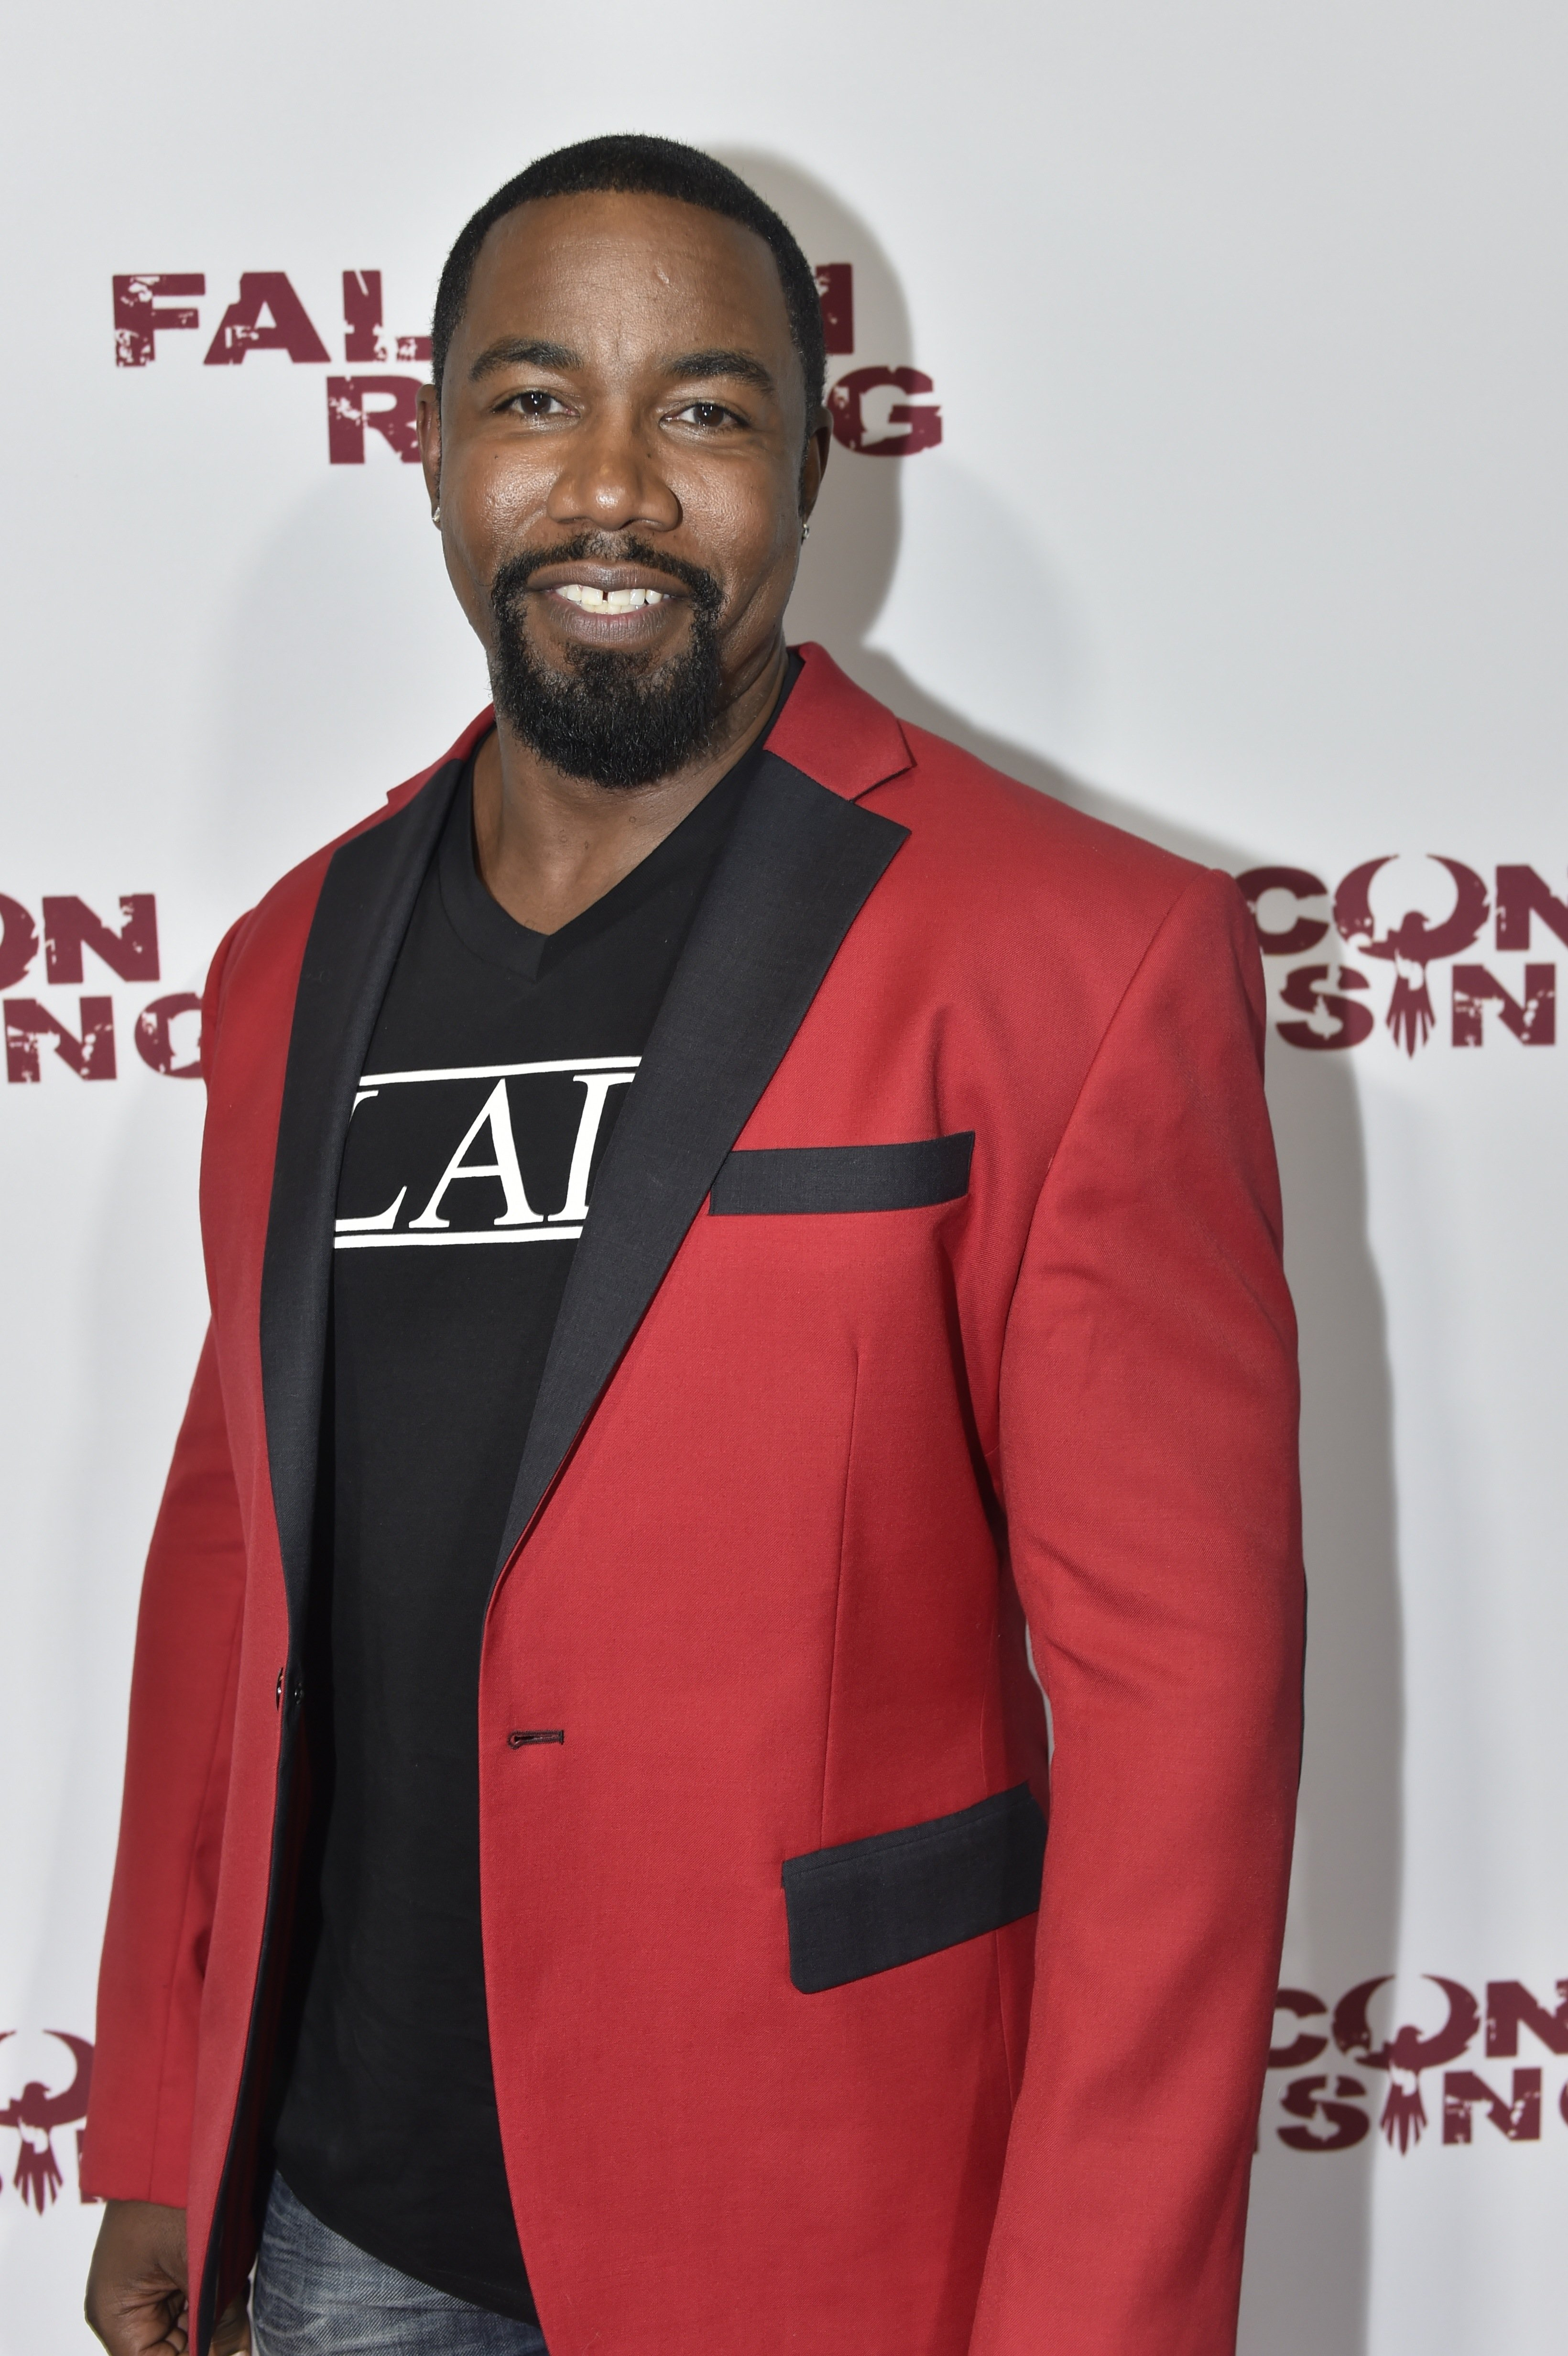 """Michael Jai White at the advance screening of """"Falcon Rising"""" movie on September 5, 2014 in Morrow, Georgia. 